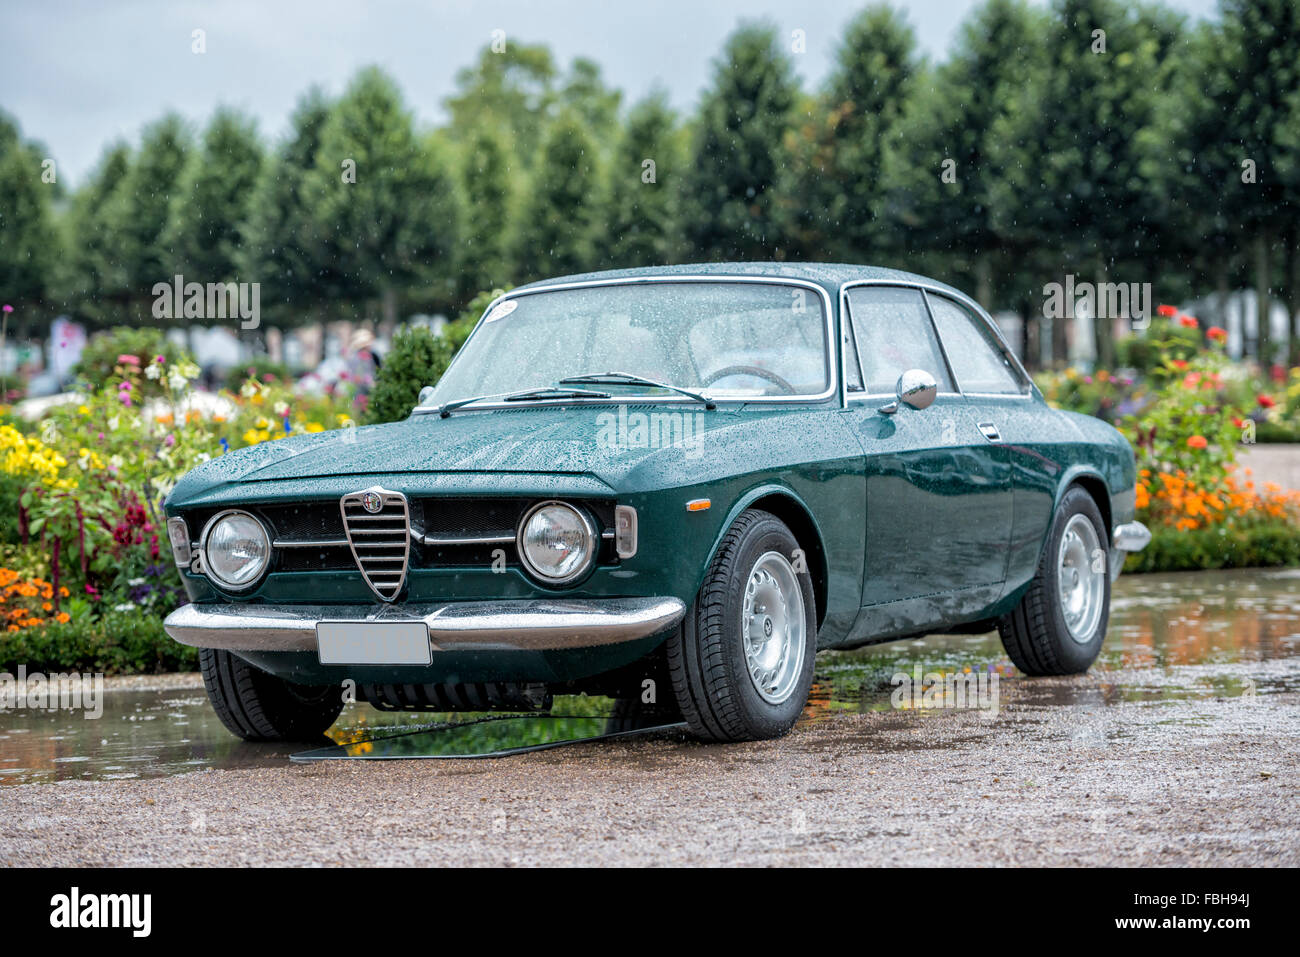 Alfa Romeo Stock Photos Images Alamy Gt 1300 Junior Restoration Windscreen Wiper Motor Schwetzingen Baden Wrttemberg Germany Coupe At The Classic